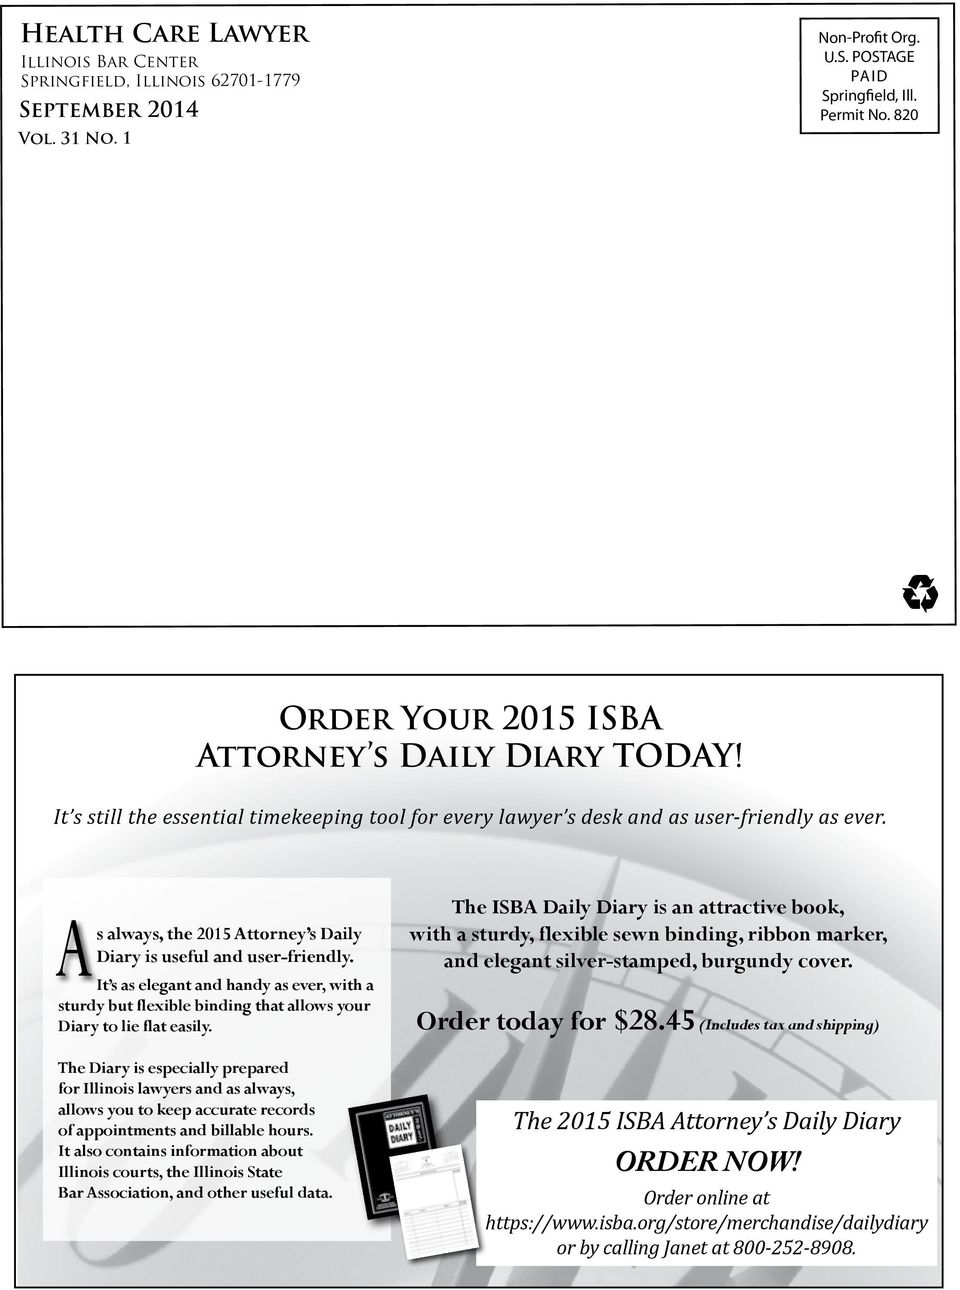 As always, the 2015 Attorney s Daily Diary is useful and user-friendly. It s as elegant and handy as ever, with a sturdy but flexible binding that allows your Diary to lie flat easily.